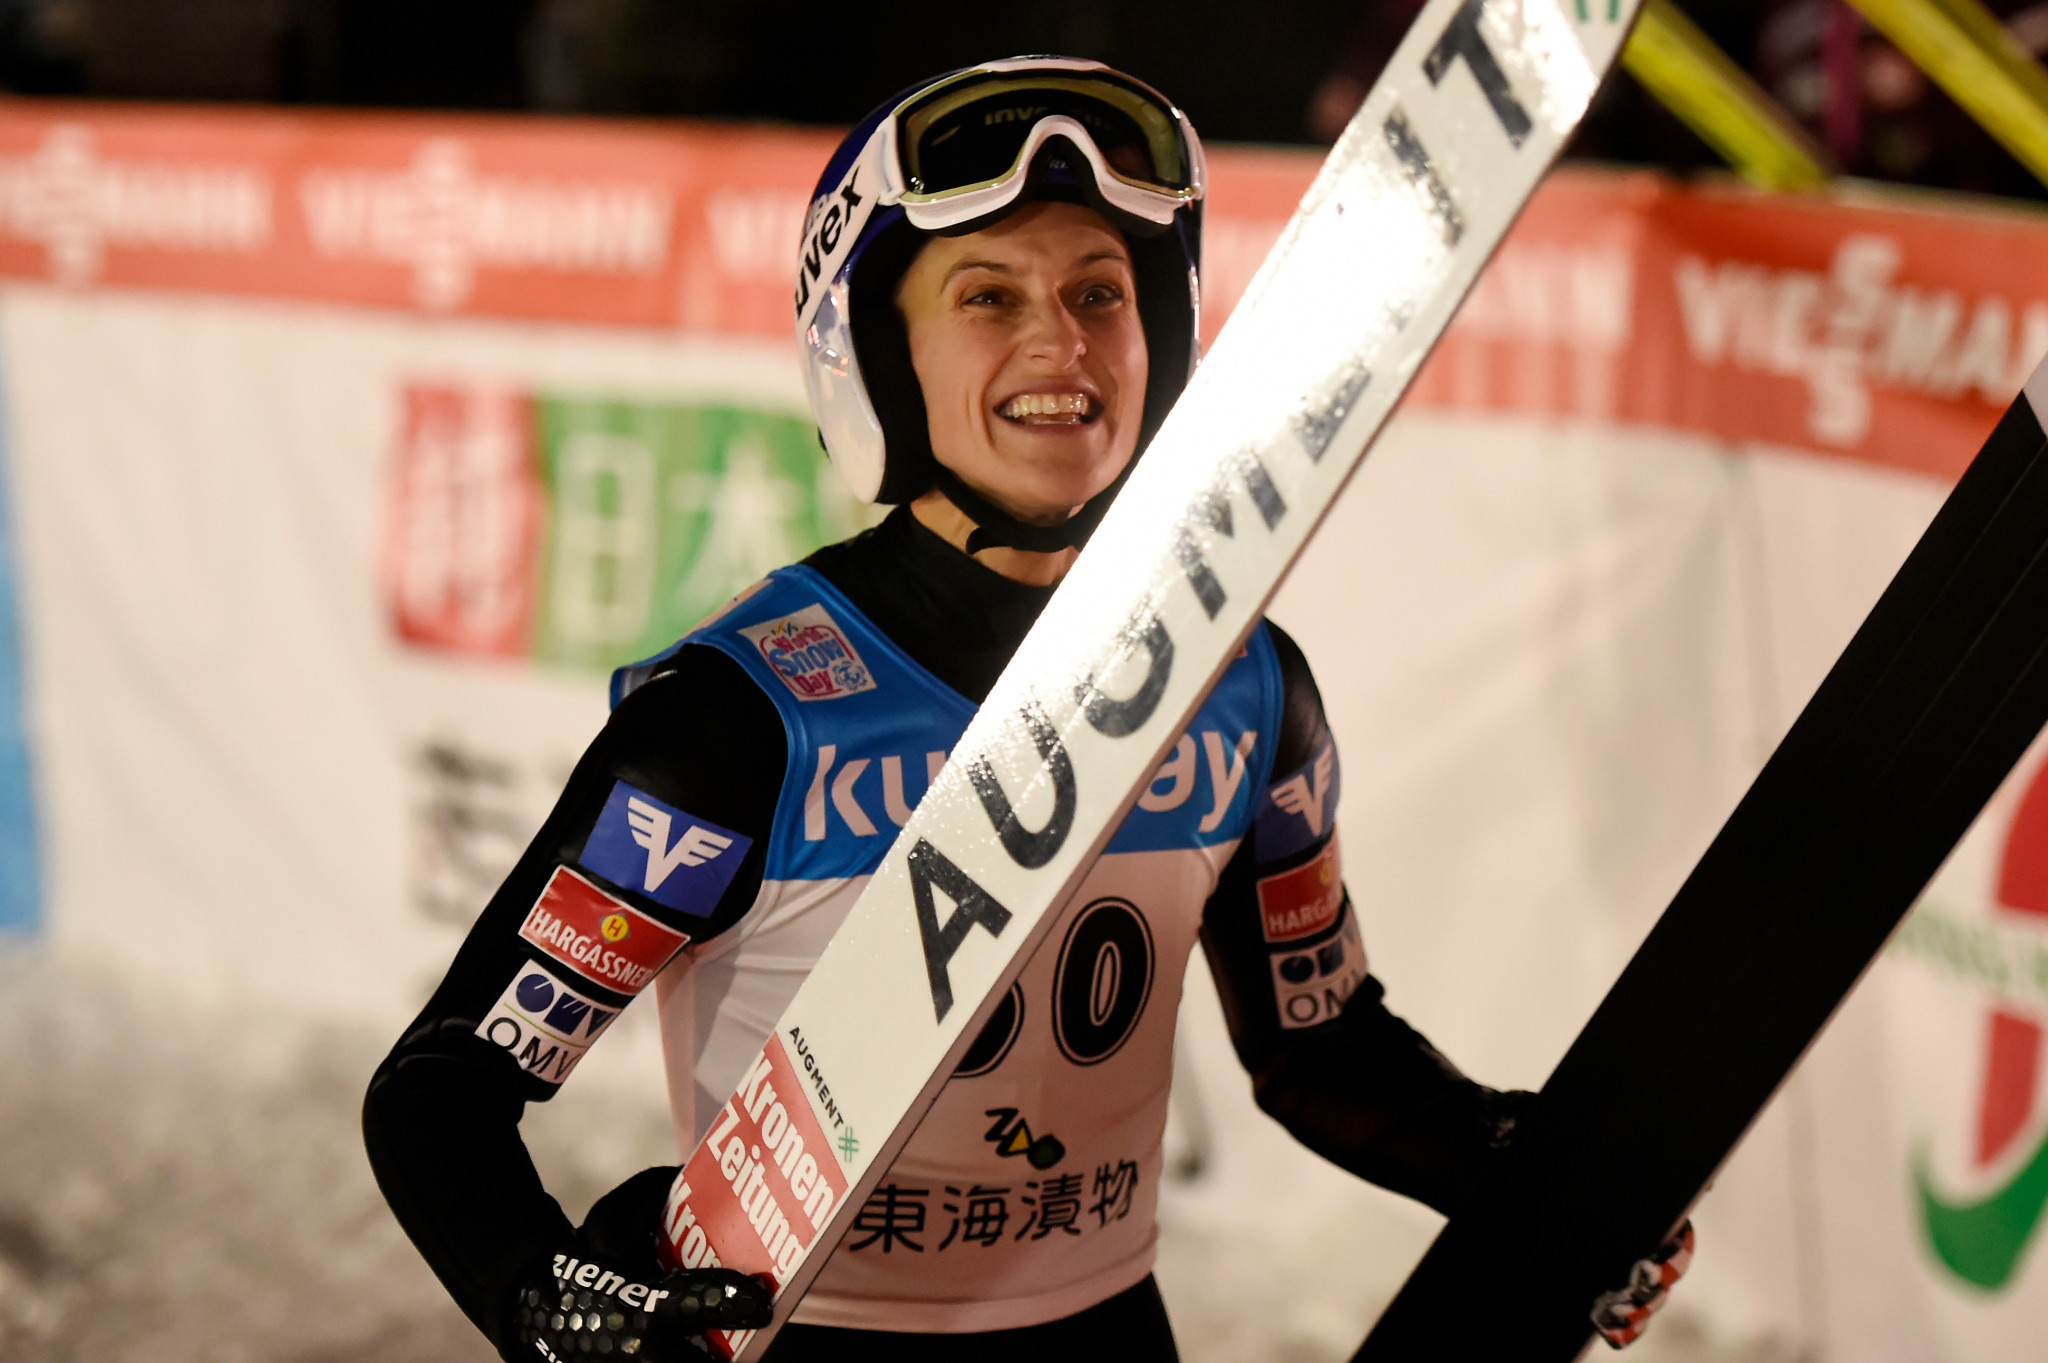 Eva Pinkelnig of Austria maintained her place in second in the FIS Ski Jumping World Cup standings ©Getty Images